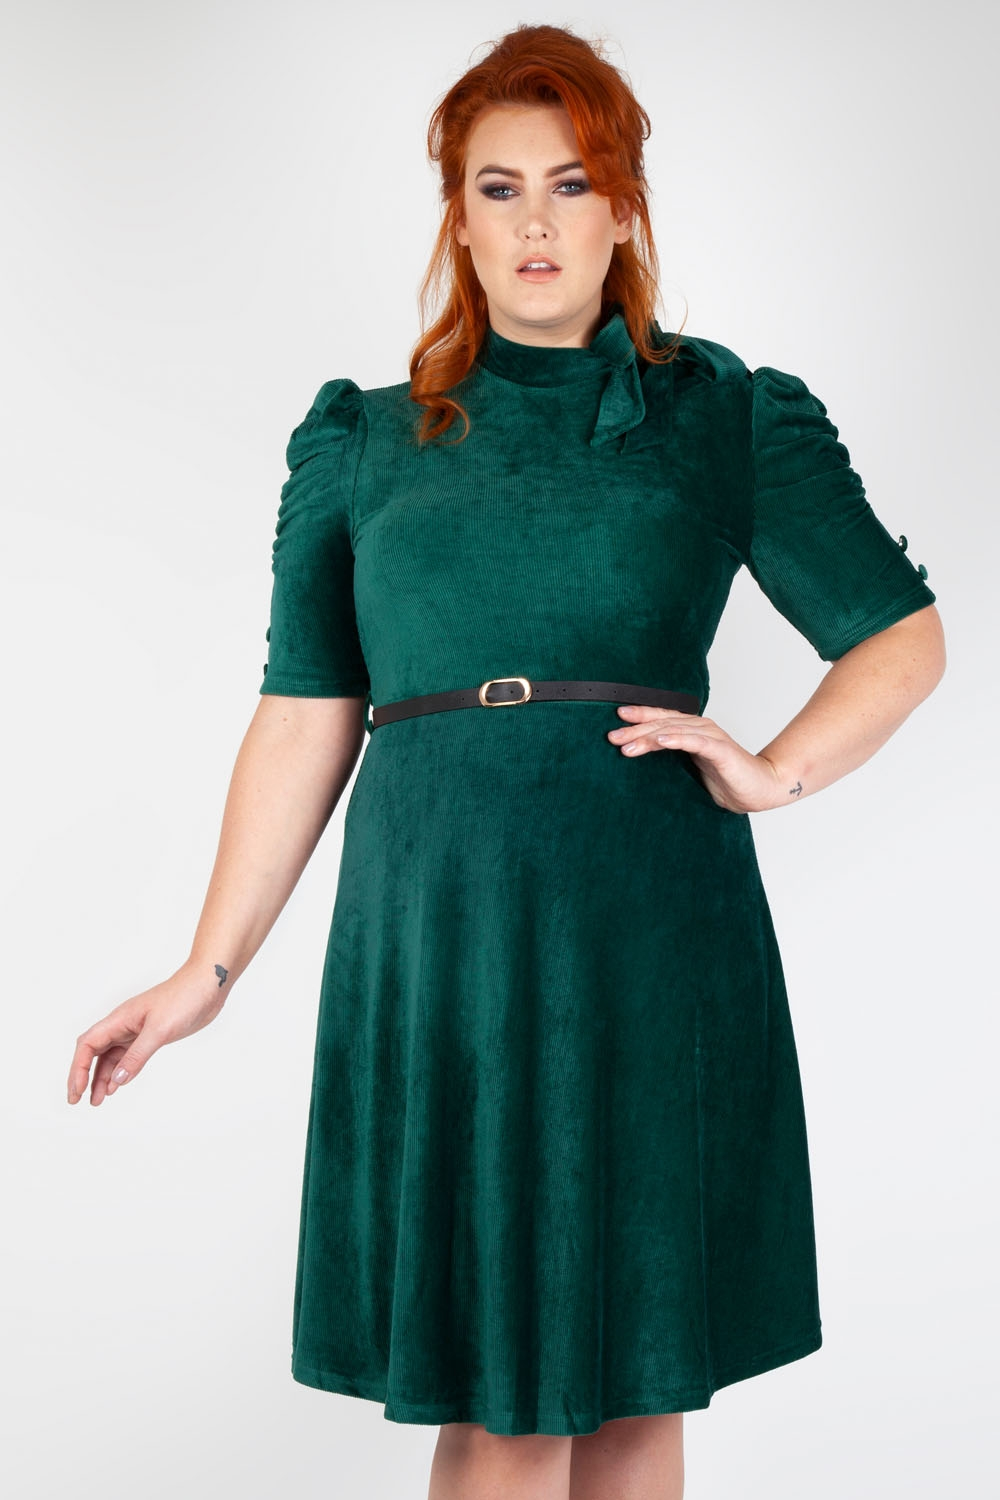 Plus Size Dresses Uk Vintage | Huston Fislar Photography